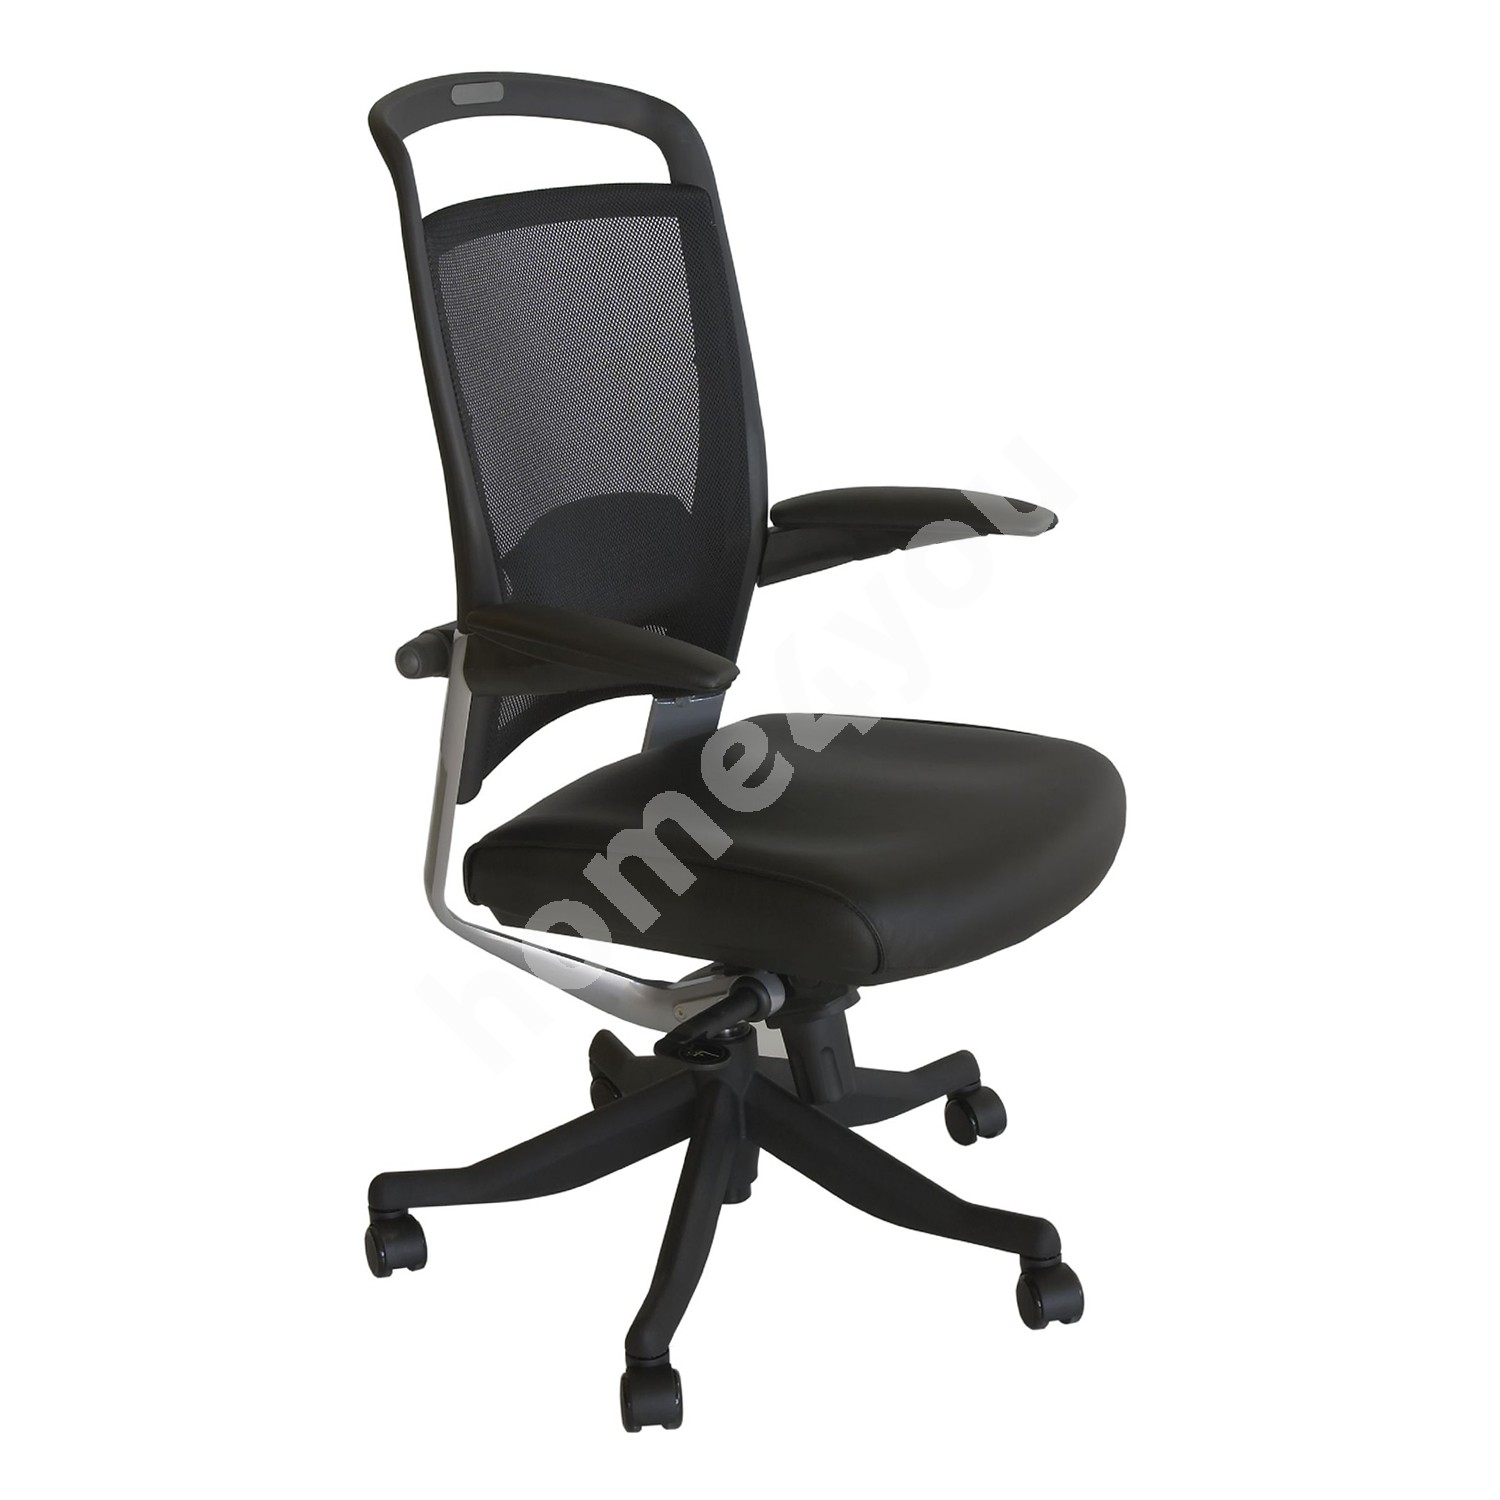 Task chair FULKRUM 50xD51xH110-117cm, seat: leather, back rest: mesh, color: black